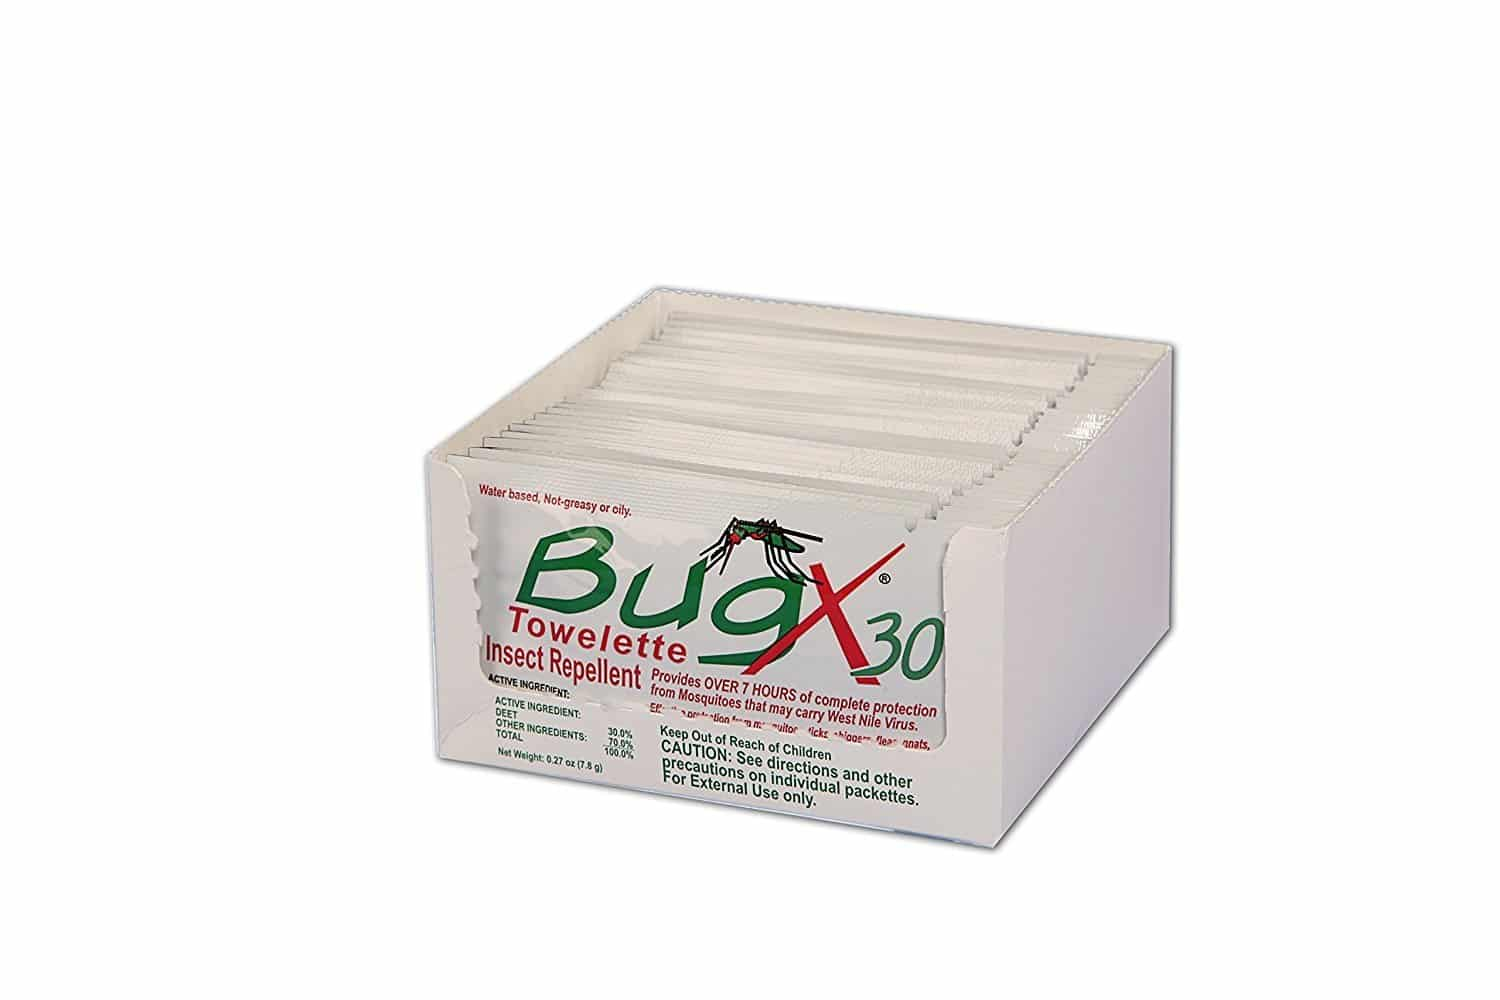 Bug X Insect Repellent Towelette Foil Pack